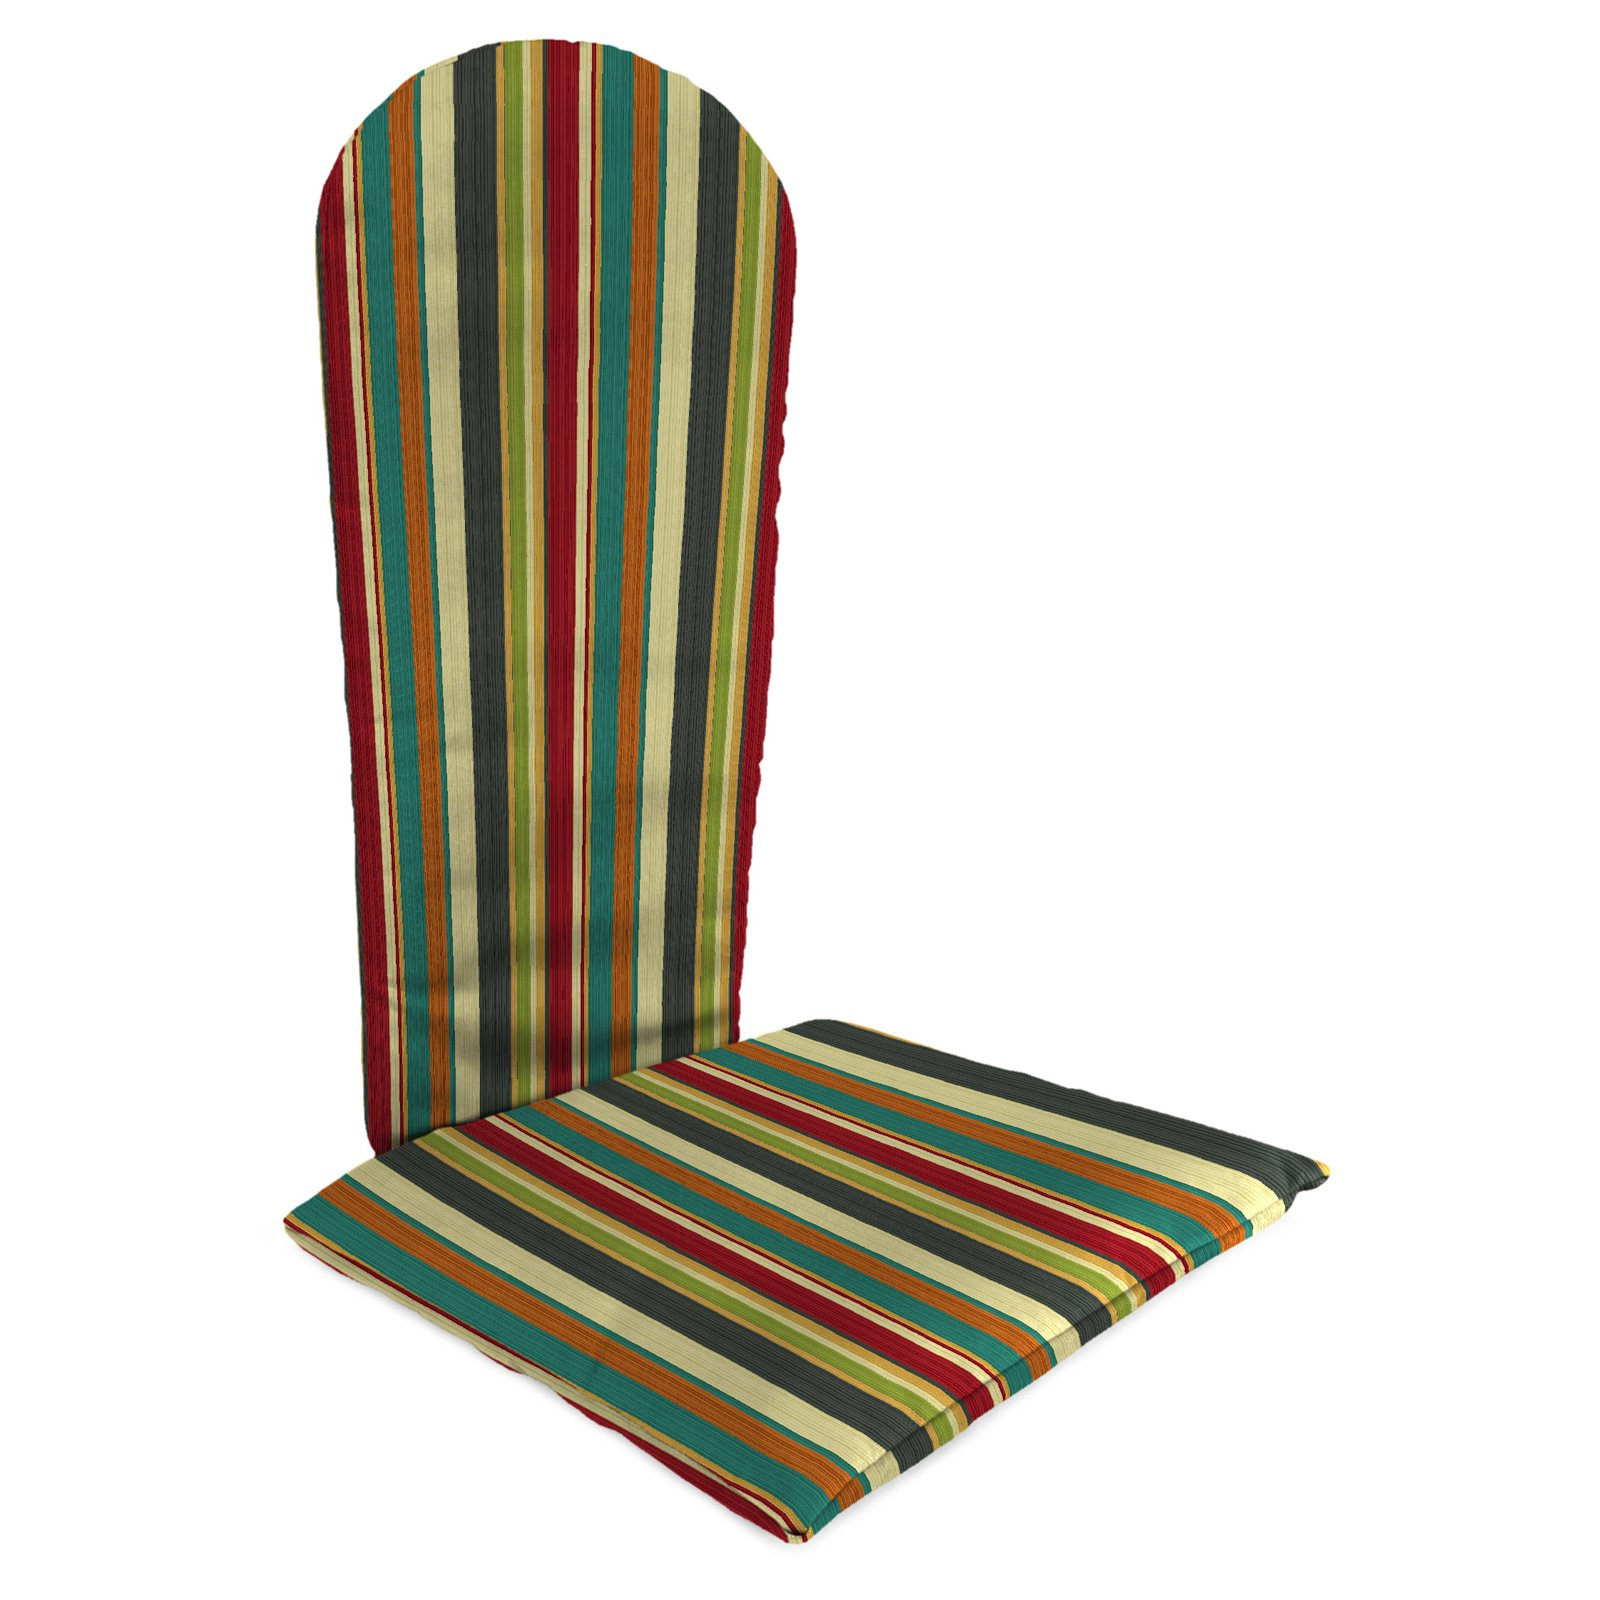 Jordan Knife Edge Outdoor Draw The Line Adirondack Chair ...